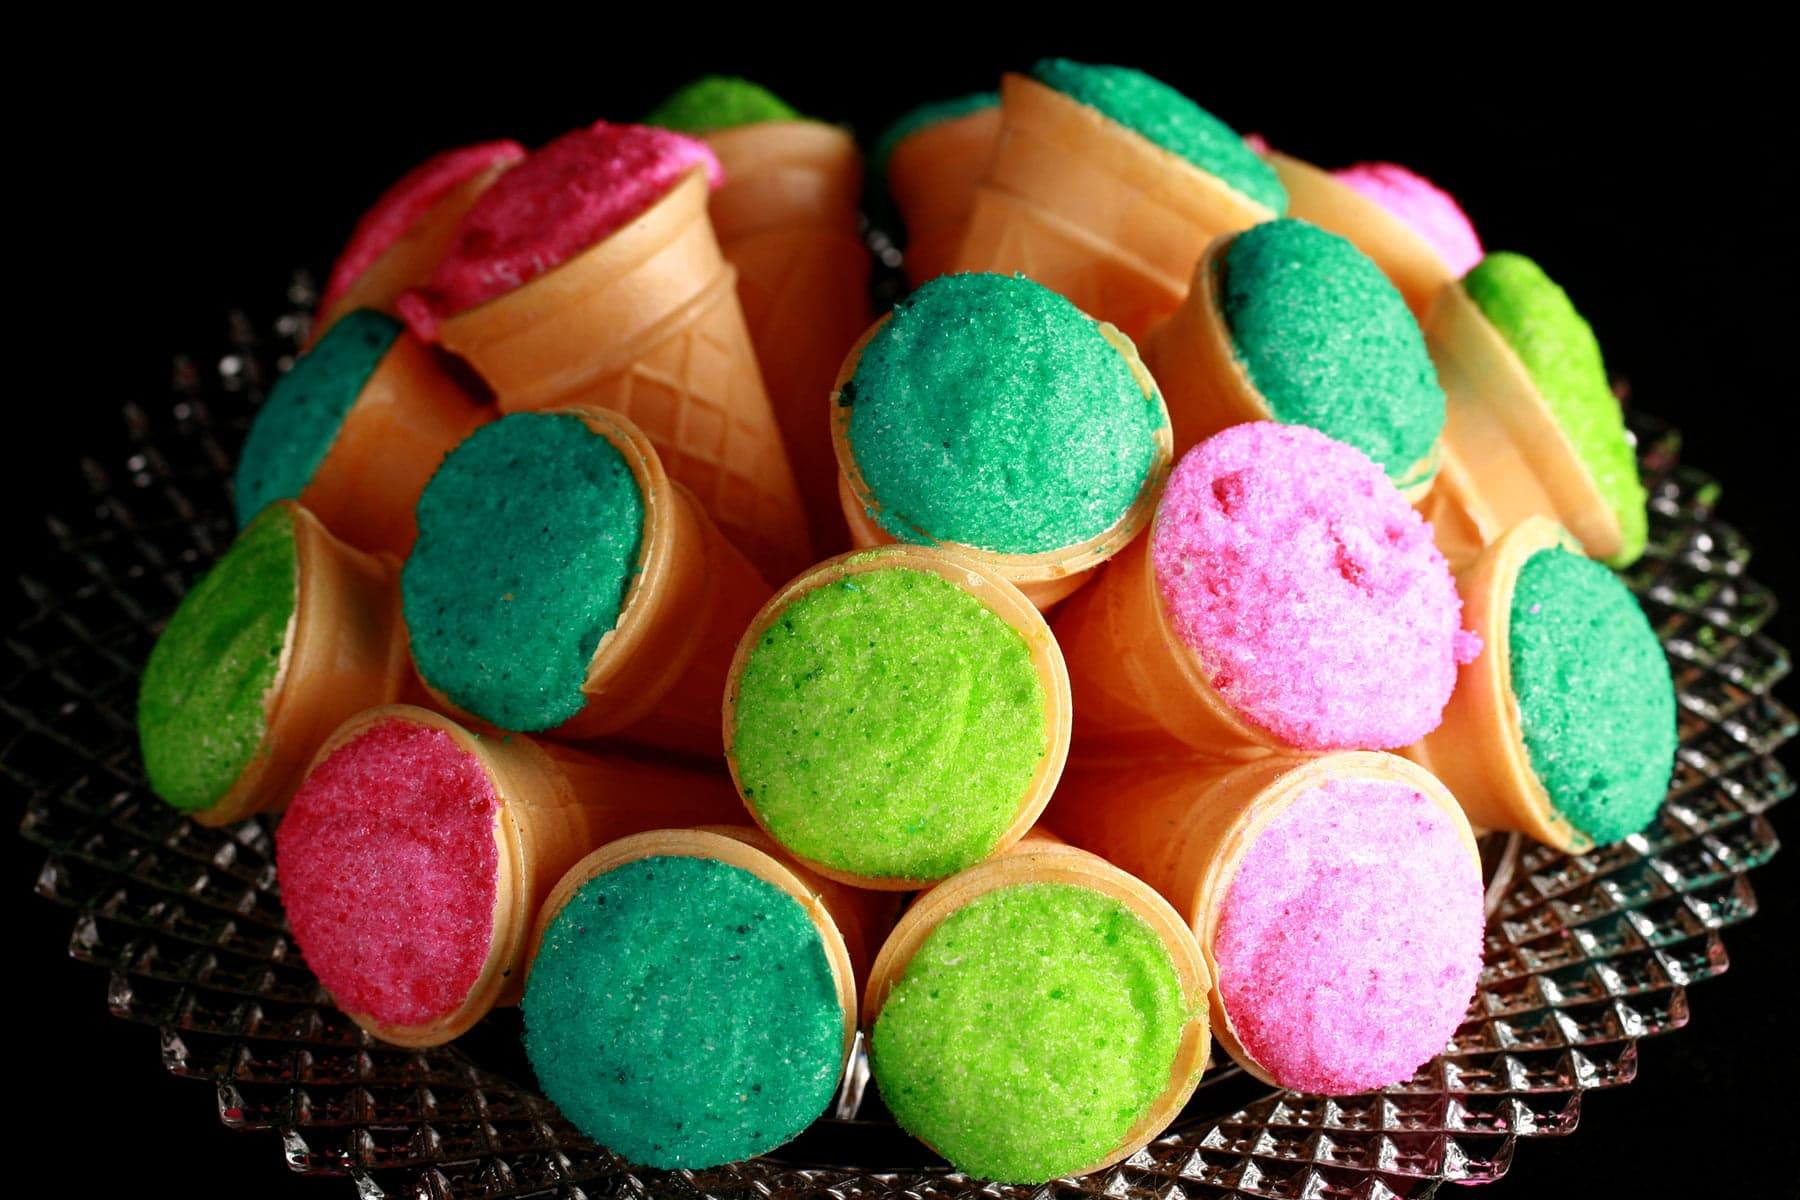 A pile of marshmallow cones - mini ice cream cones filled with marshmallow - are arranged on a plate. The exposed marshmallow of each is coated in colourful sugar - hot pink, lime green, and teal.